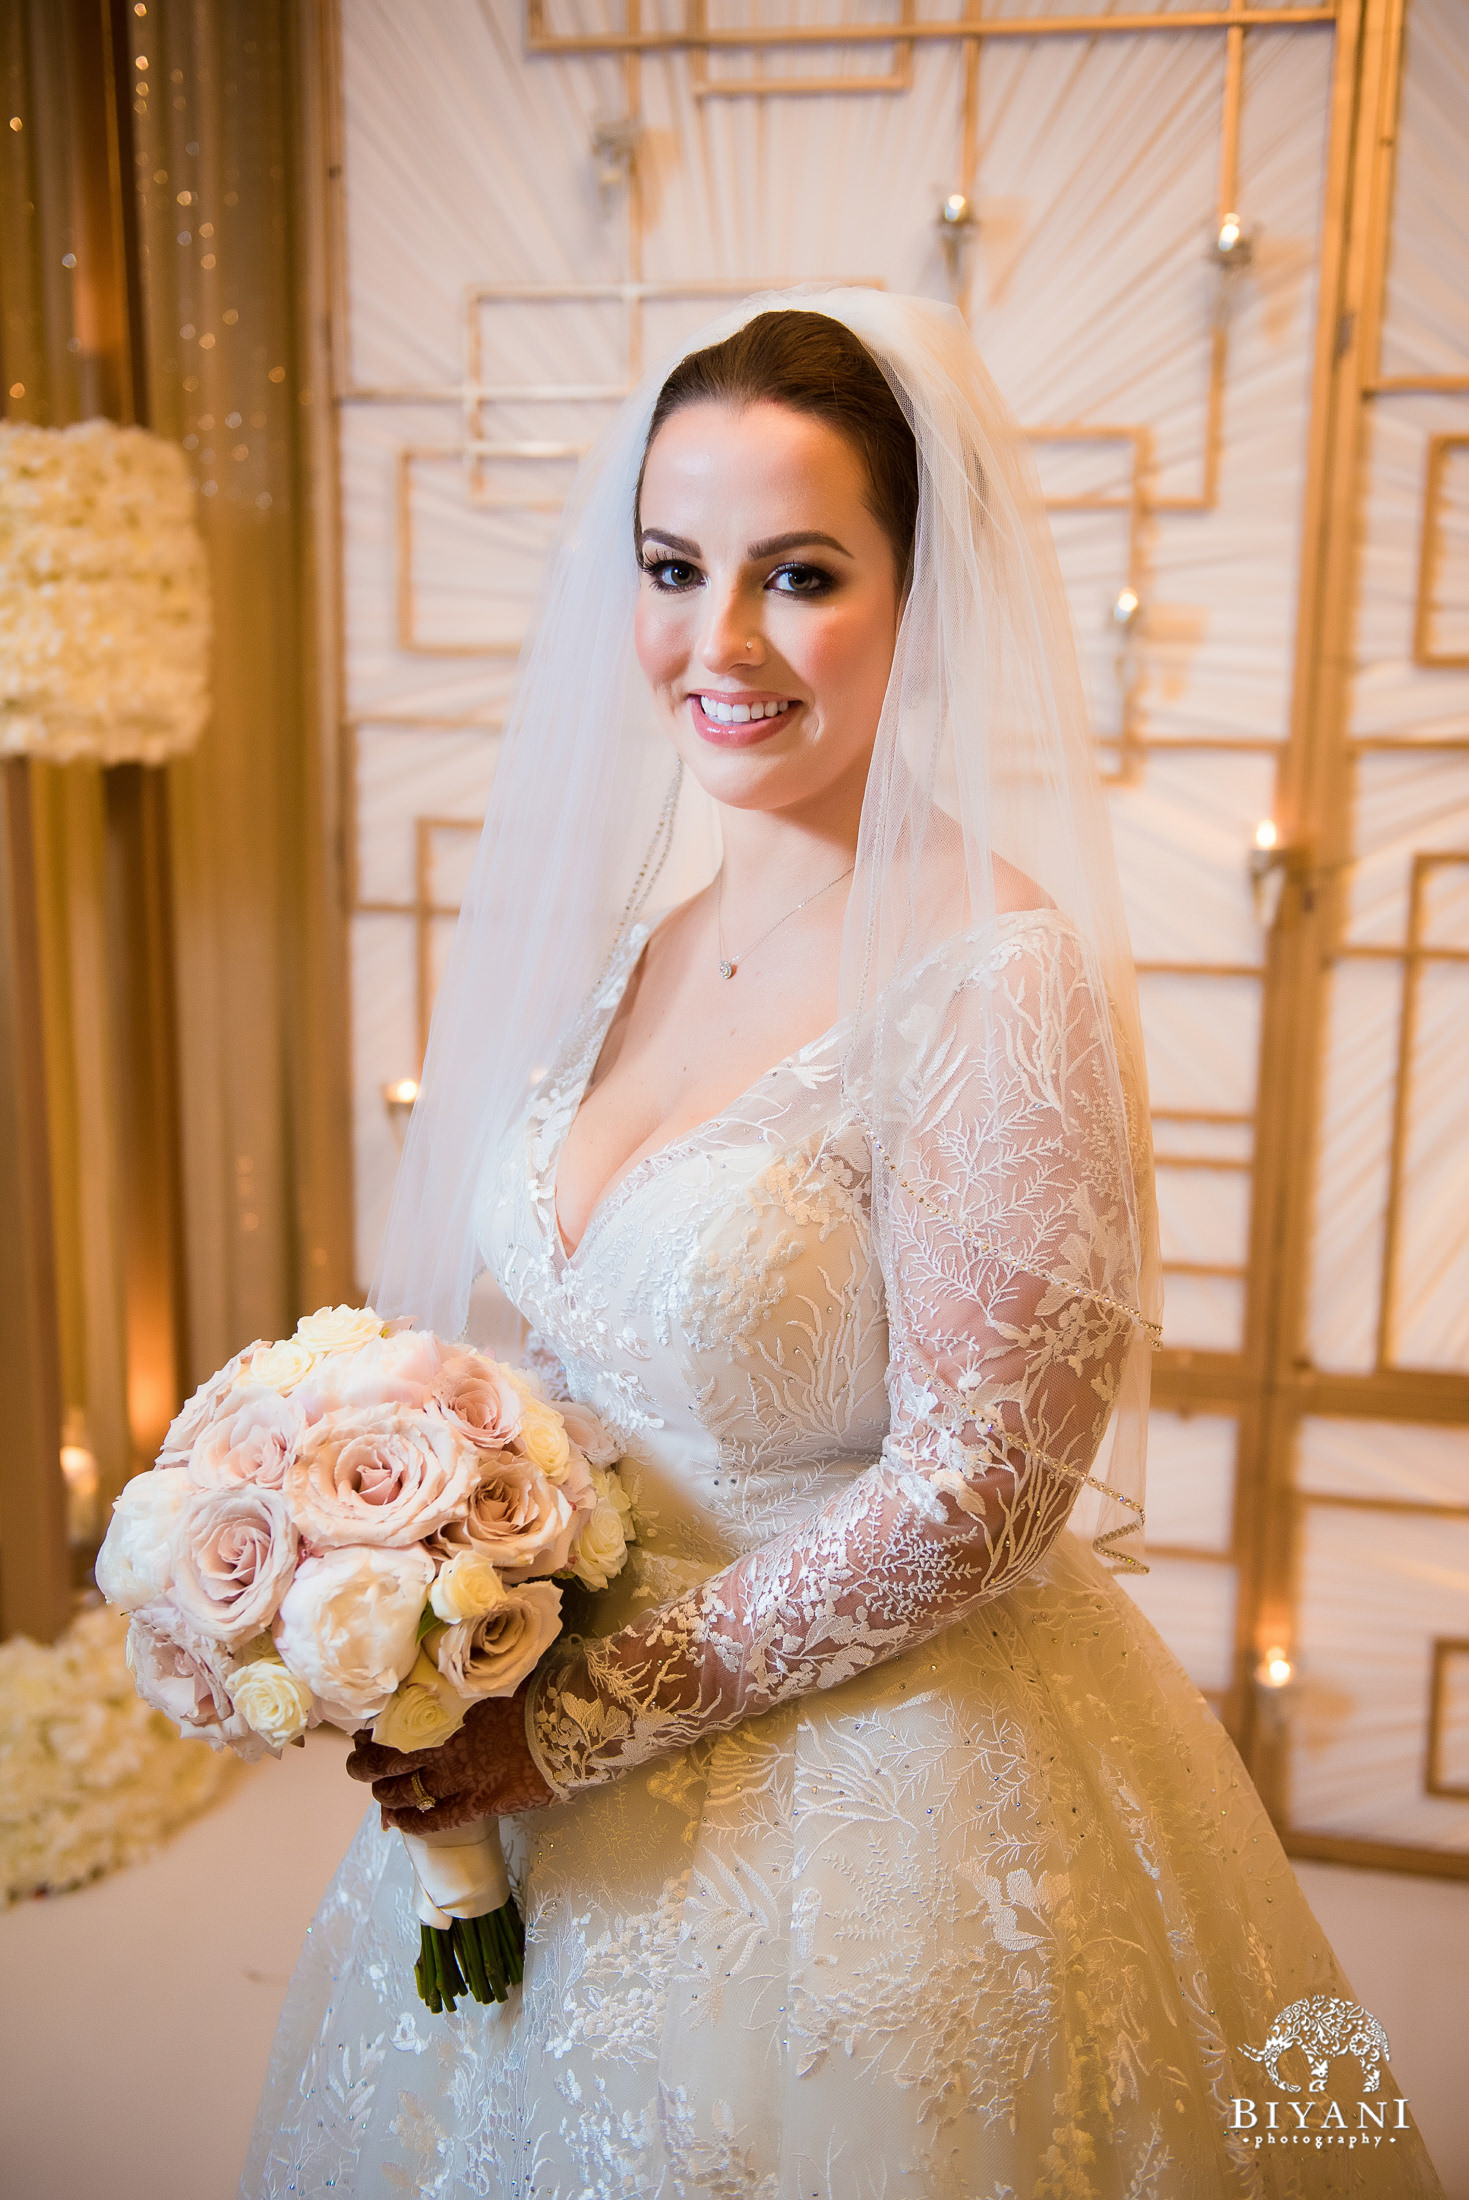 Bride poses with bouquet of flowers in American ceremony outfit